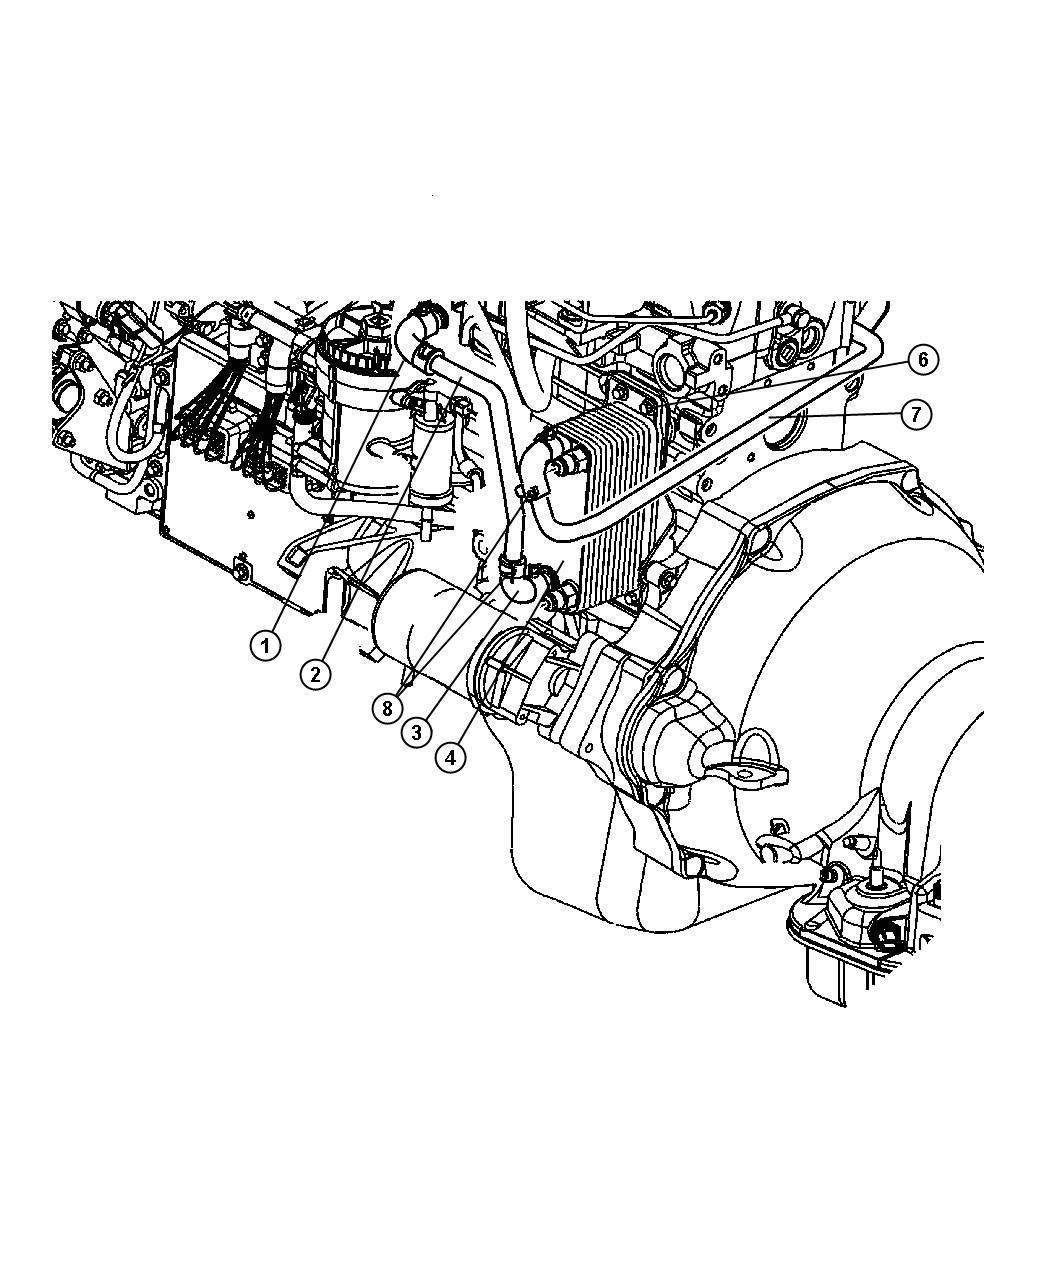 Service manual [2005 Cadillac Xlr Leaking Transmission